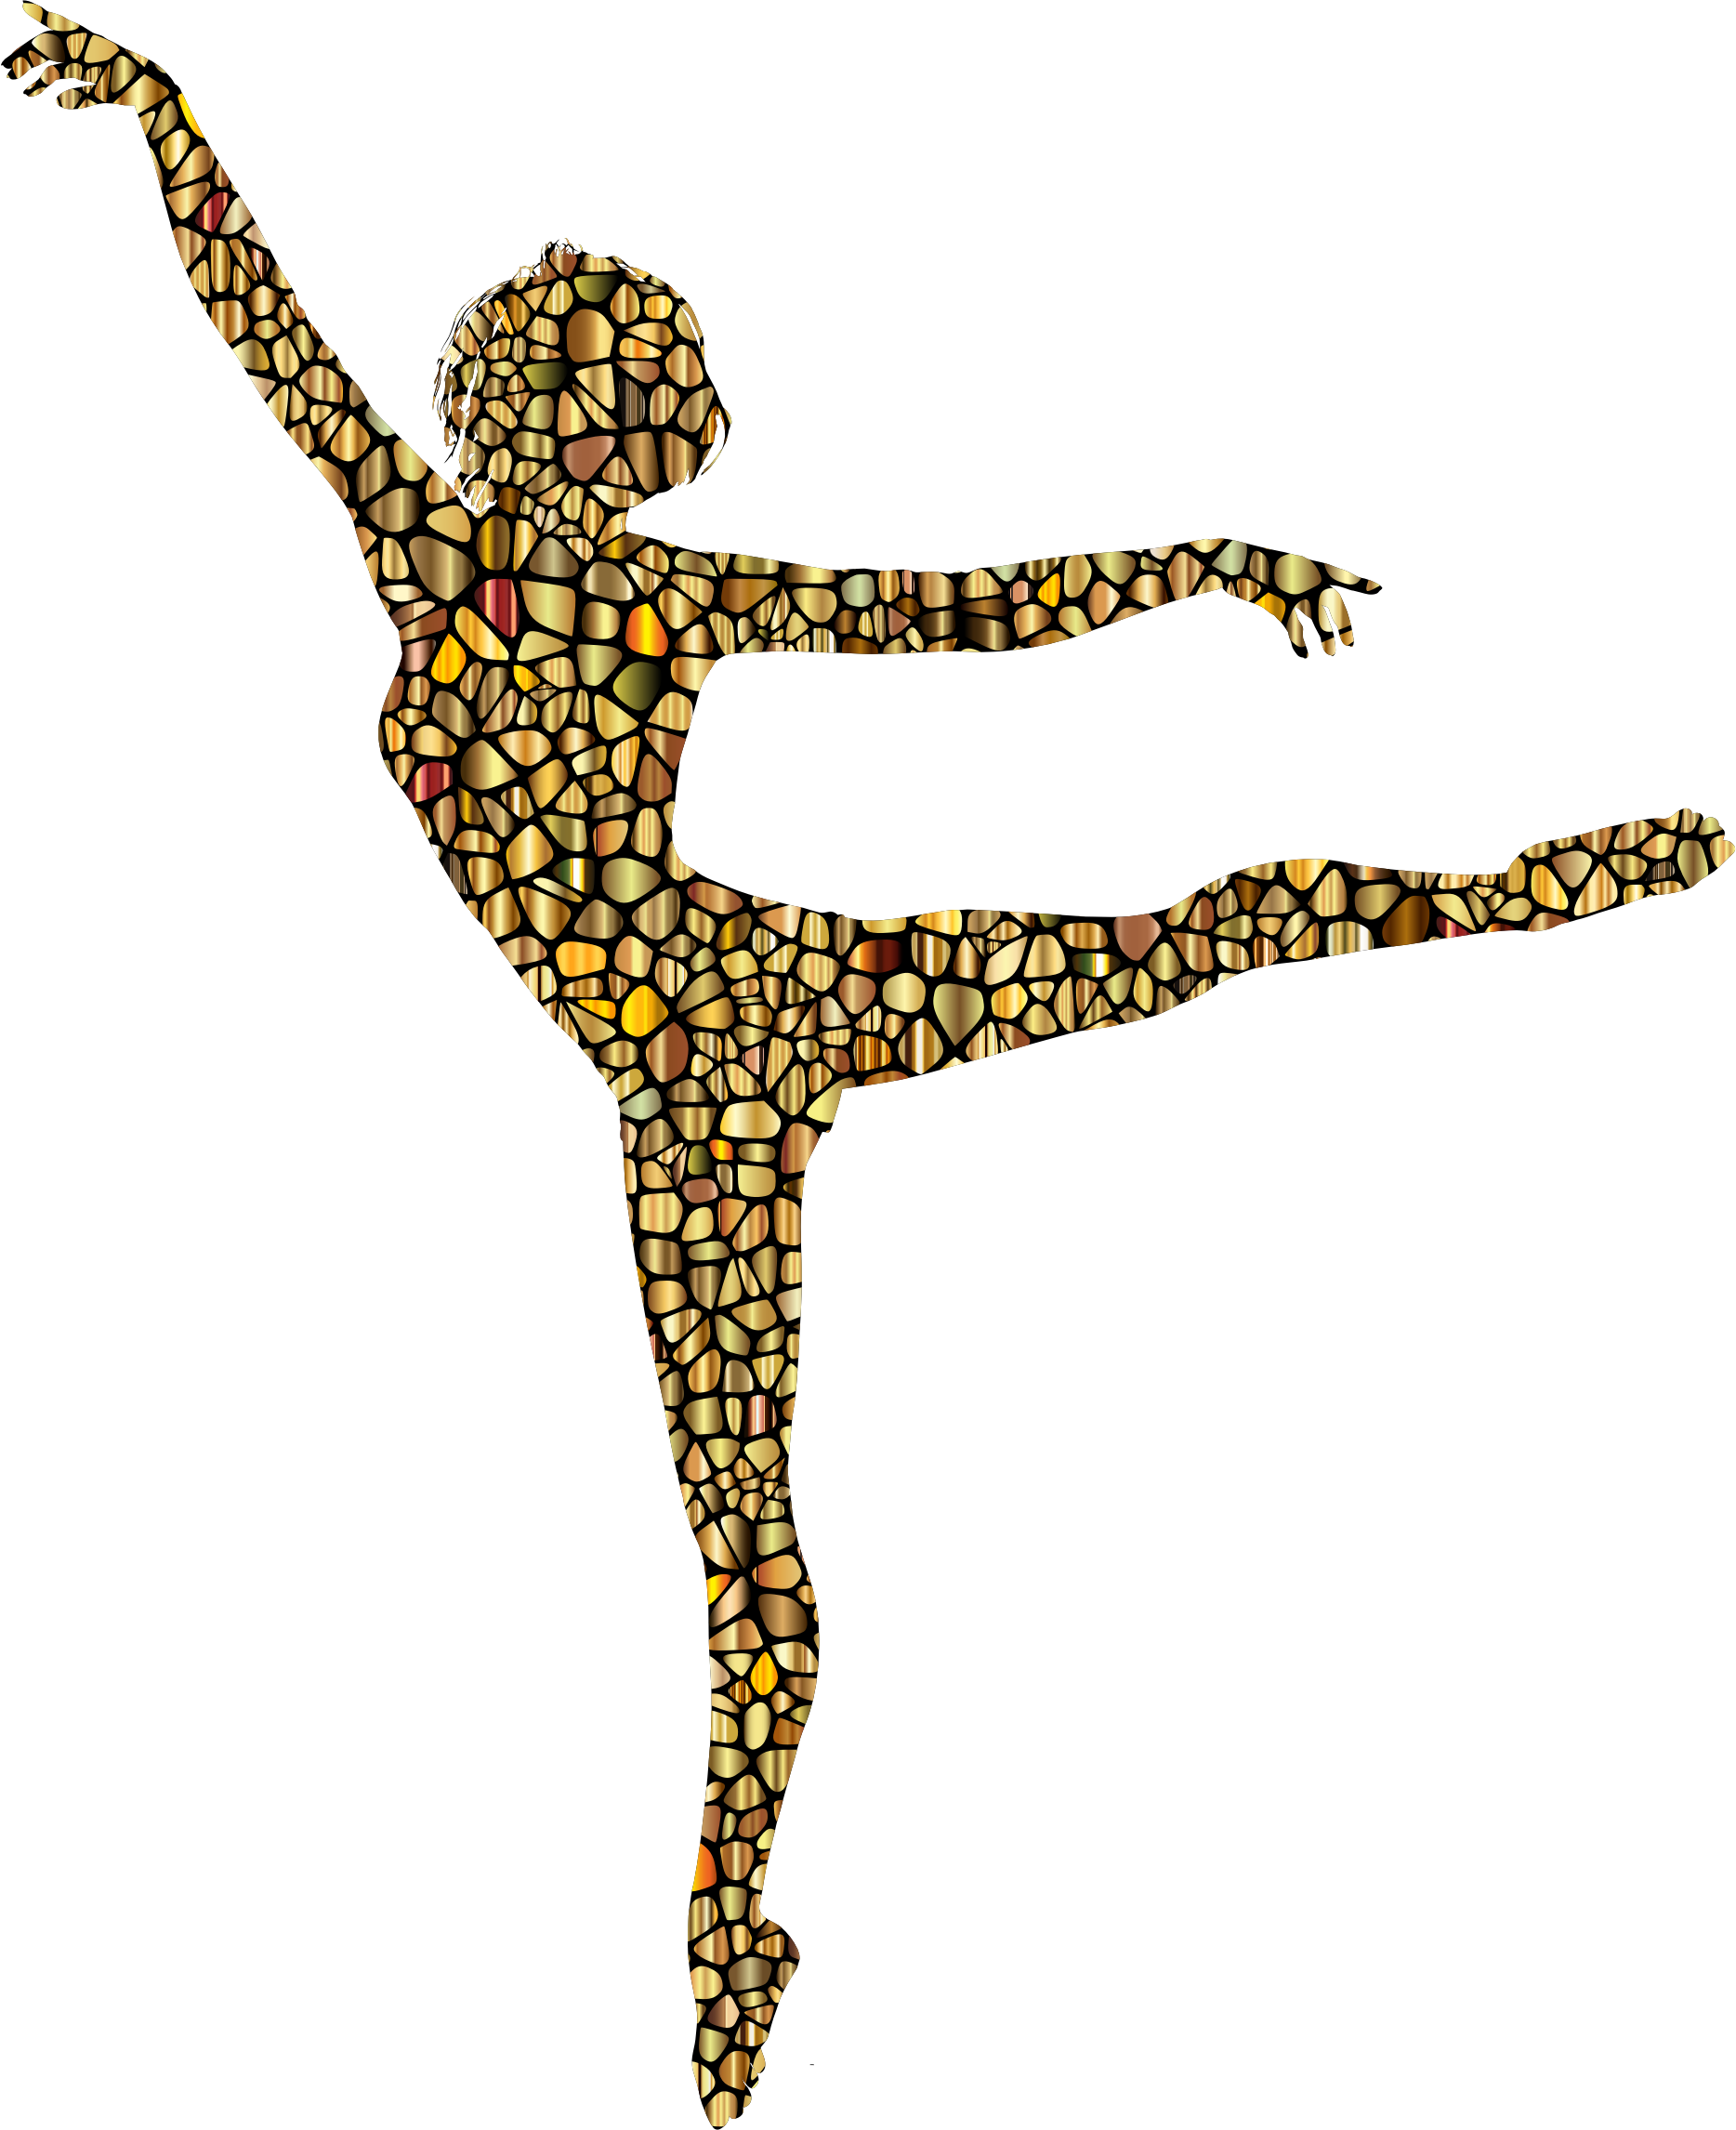 Dancing clipart colorful. Polychromatic tiled lithe woman